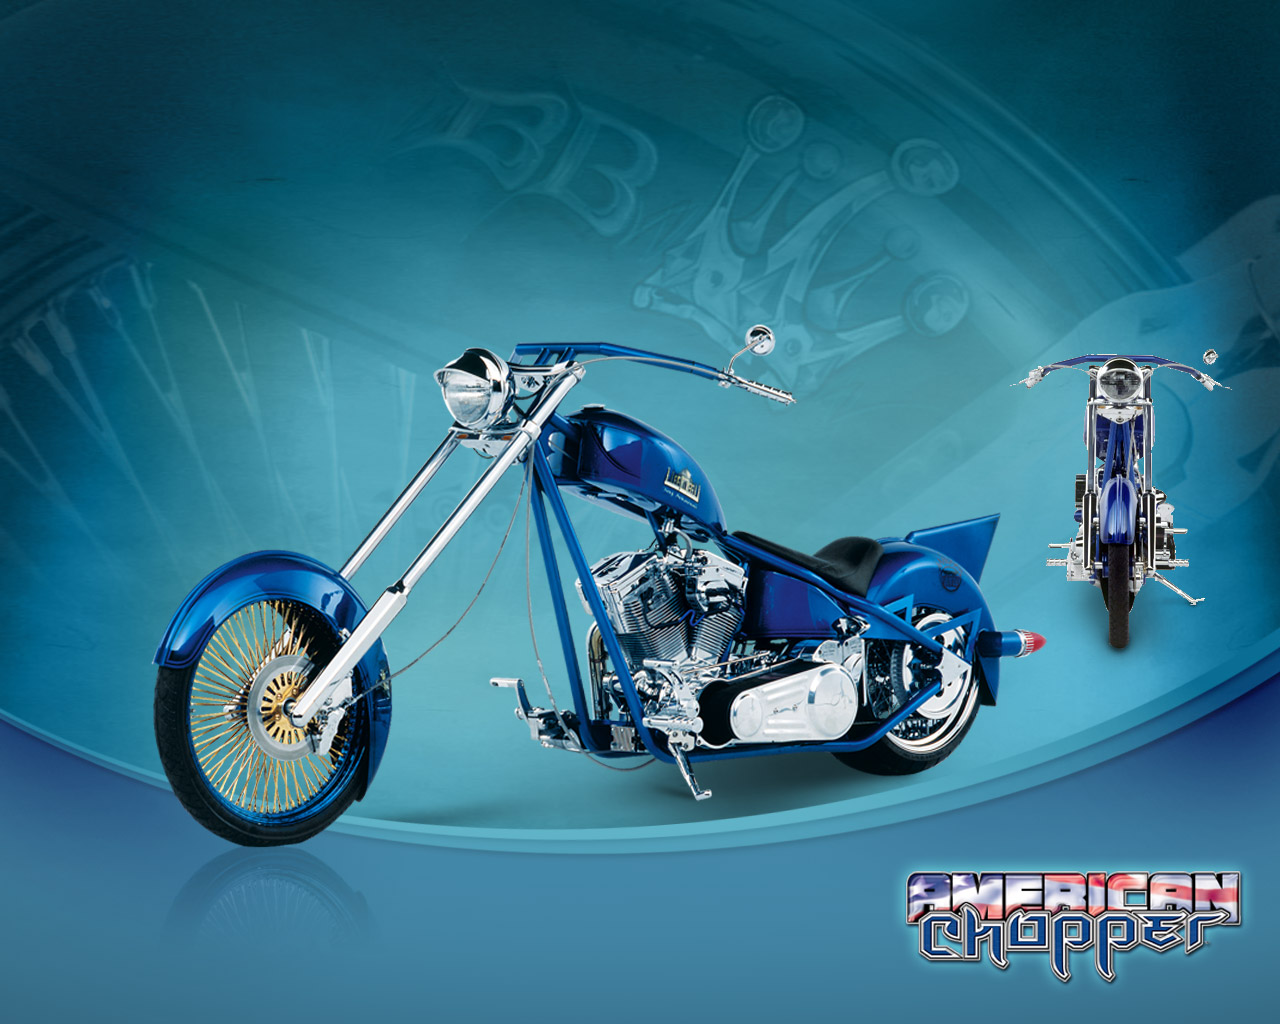 American chopper Orange County Choppers Wallpaper 124431 1280x1024